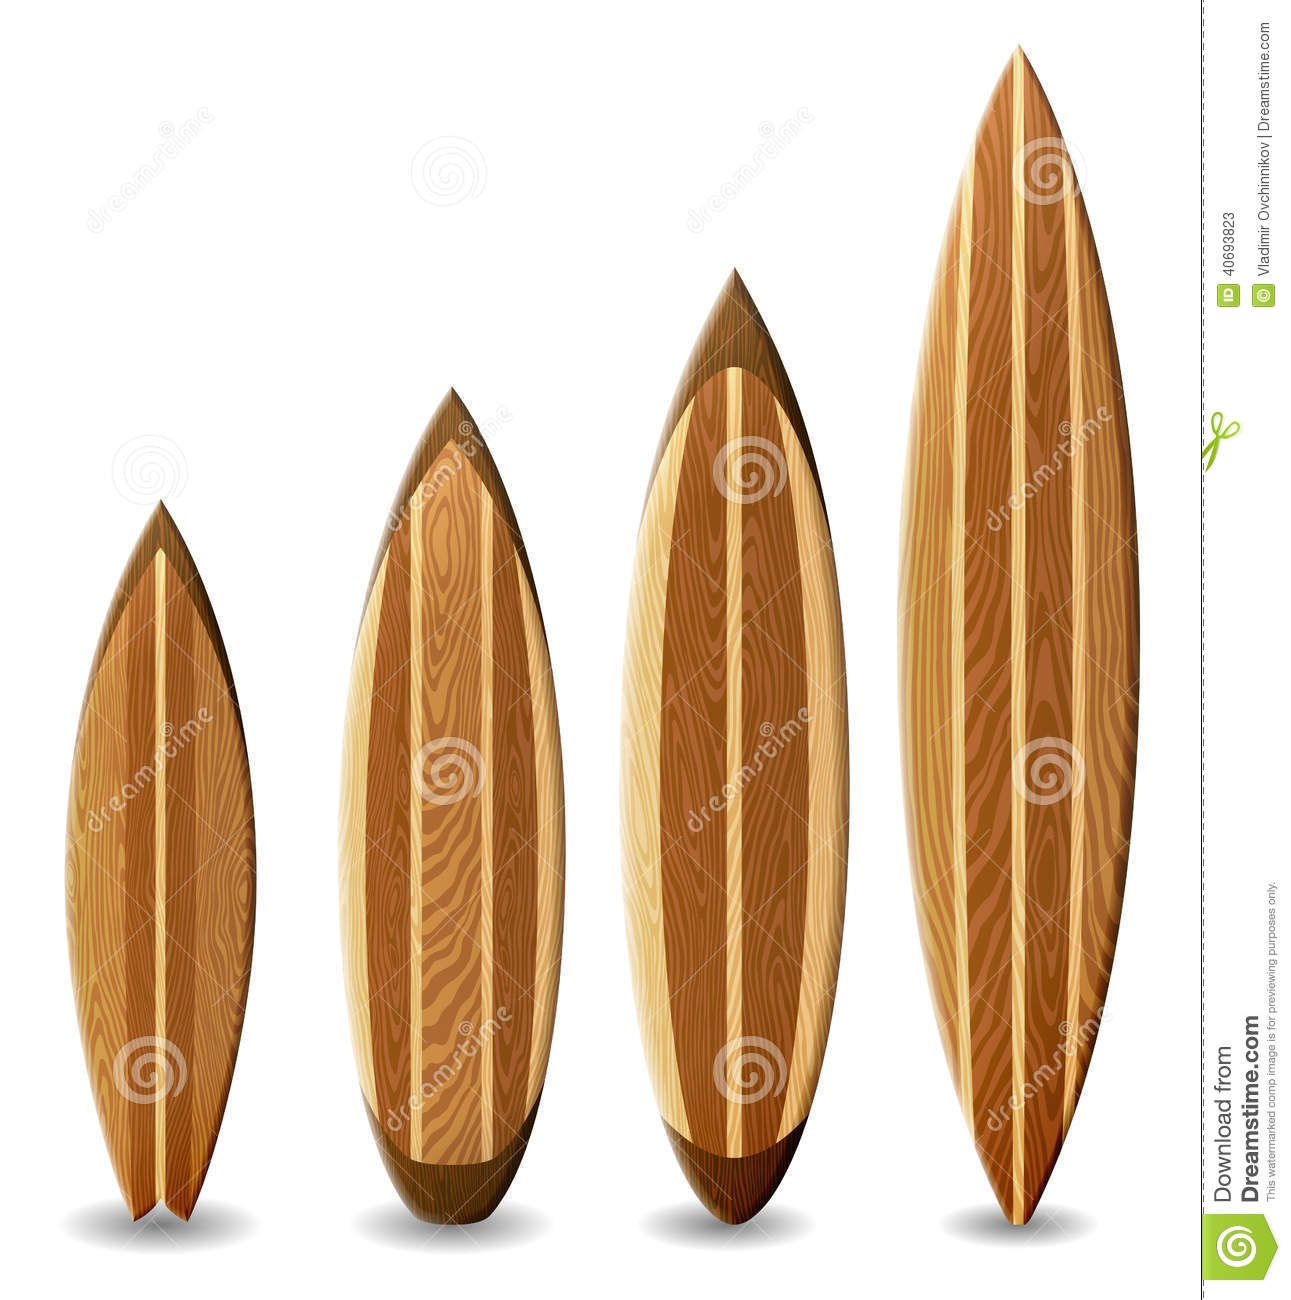 Deco Planche De Surf wooden surfboards stock illustration. illustration of